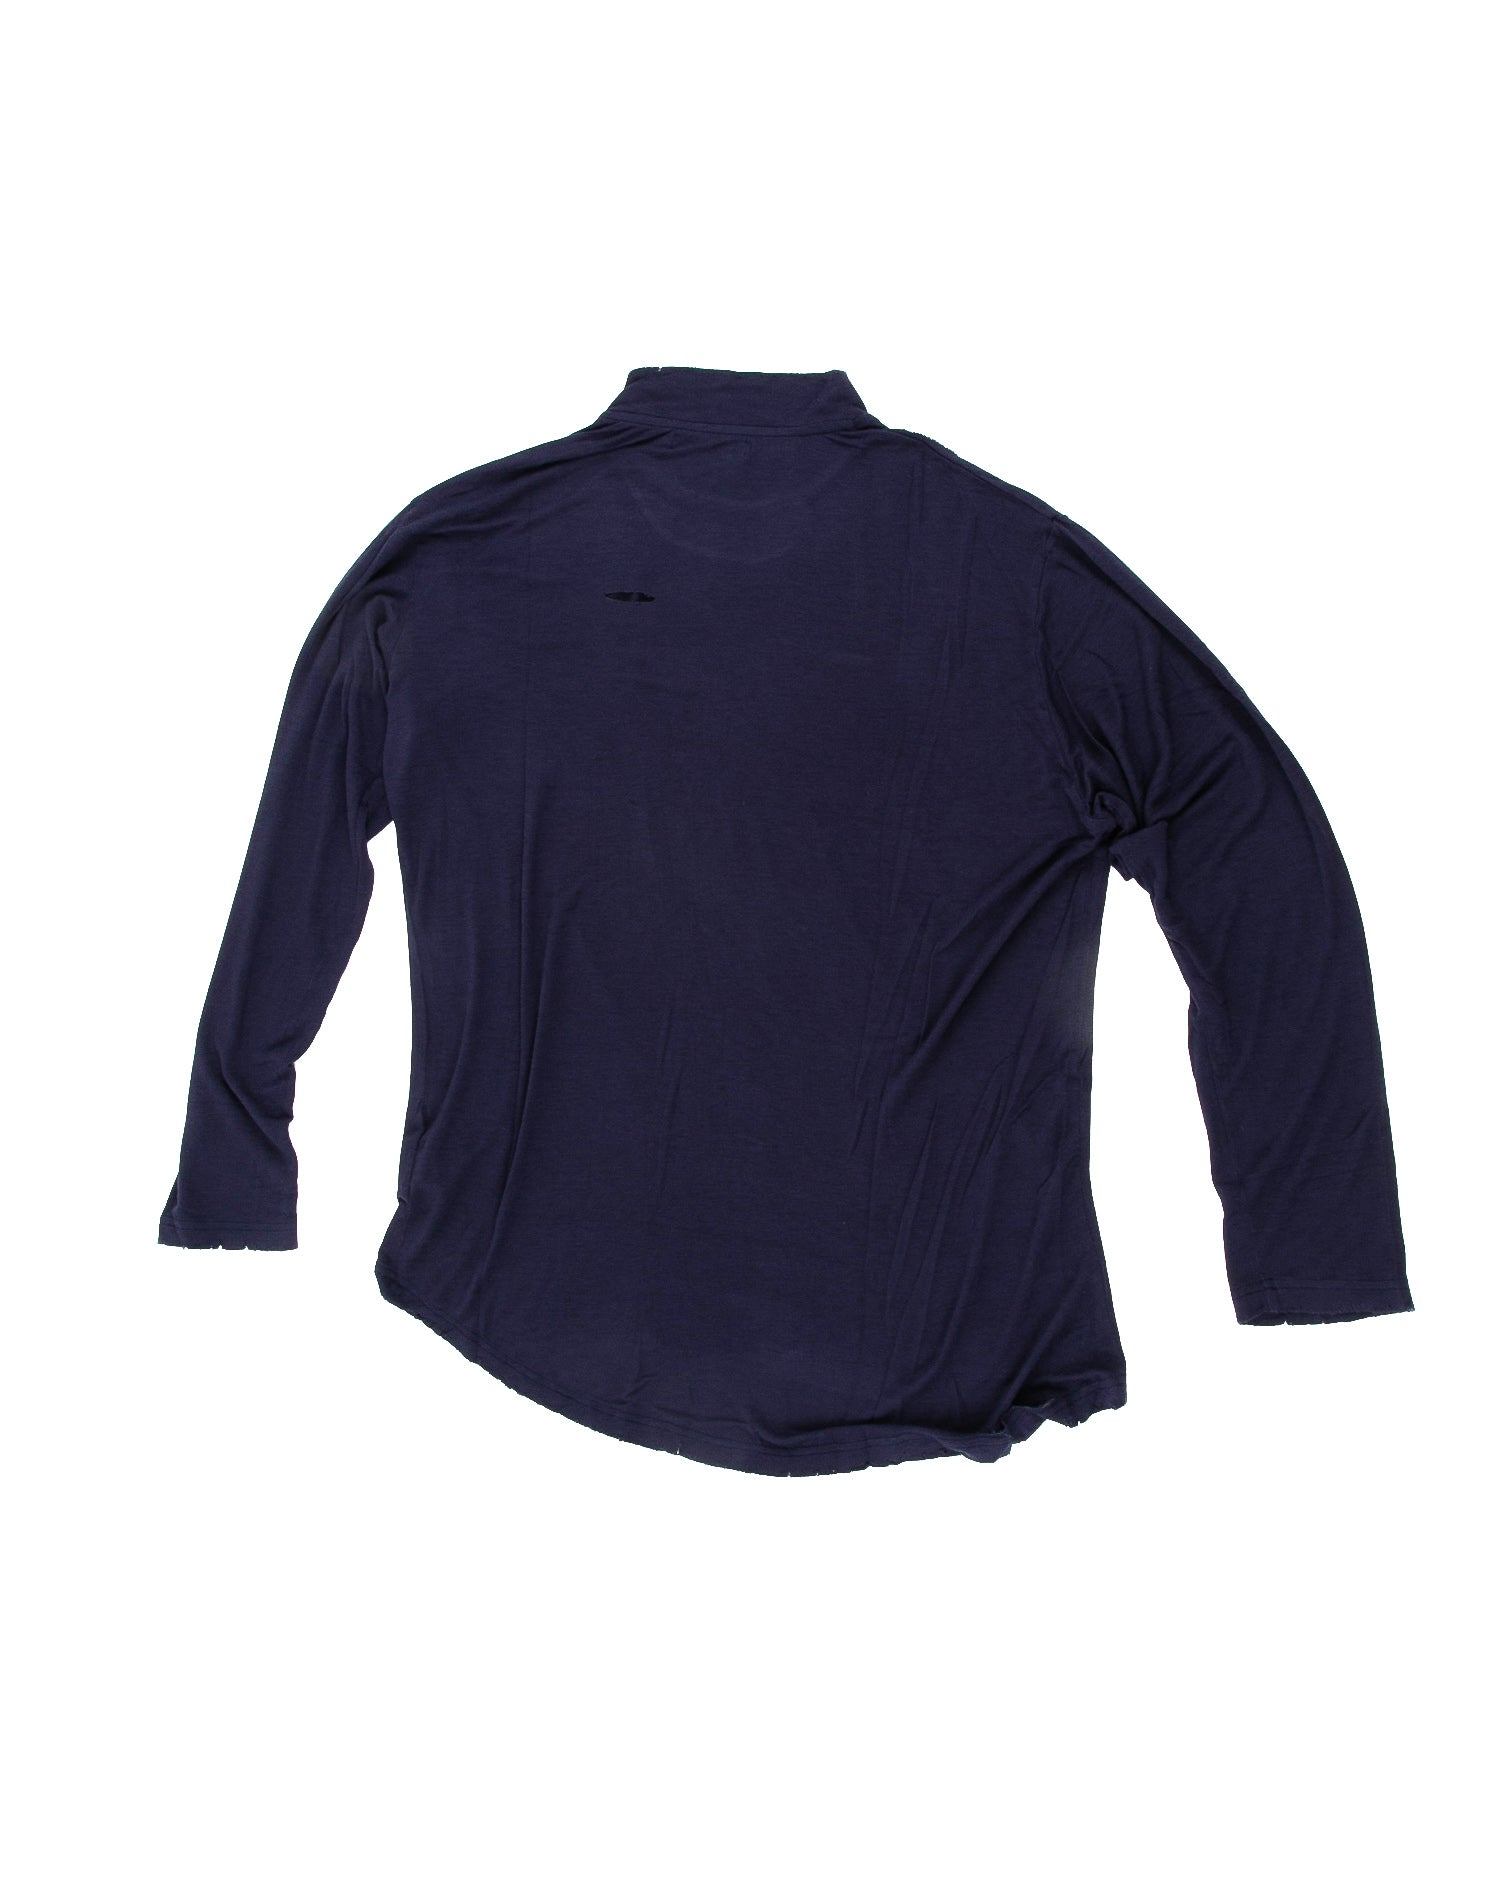 Back of Merchant Long Sleeve in Navy